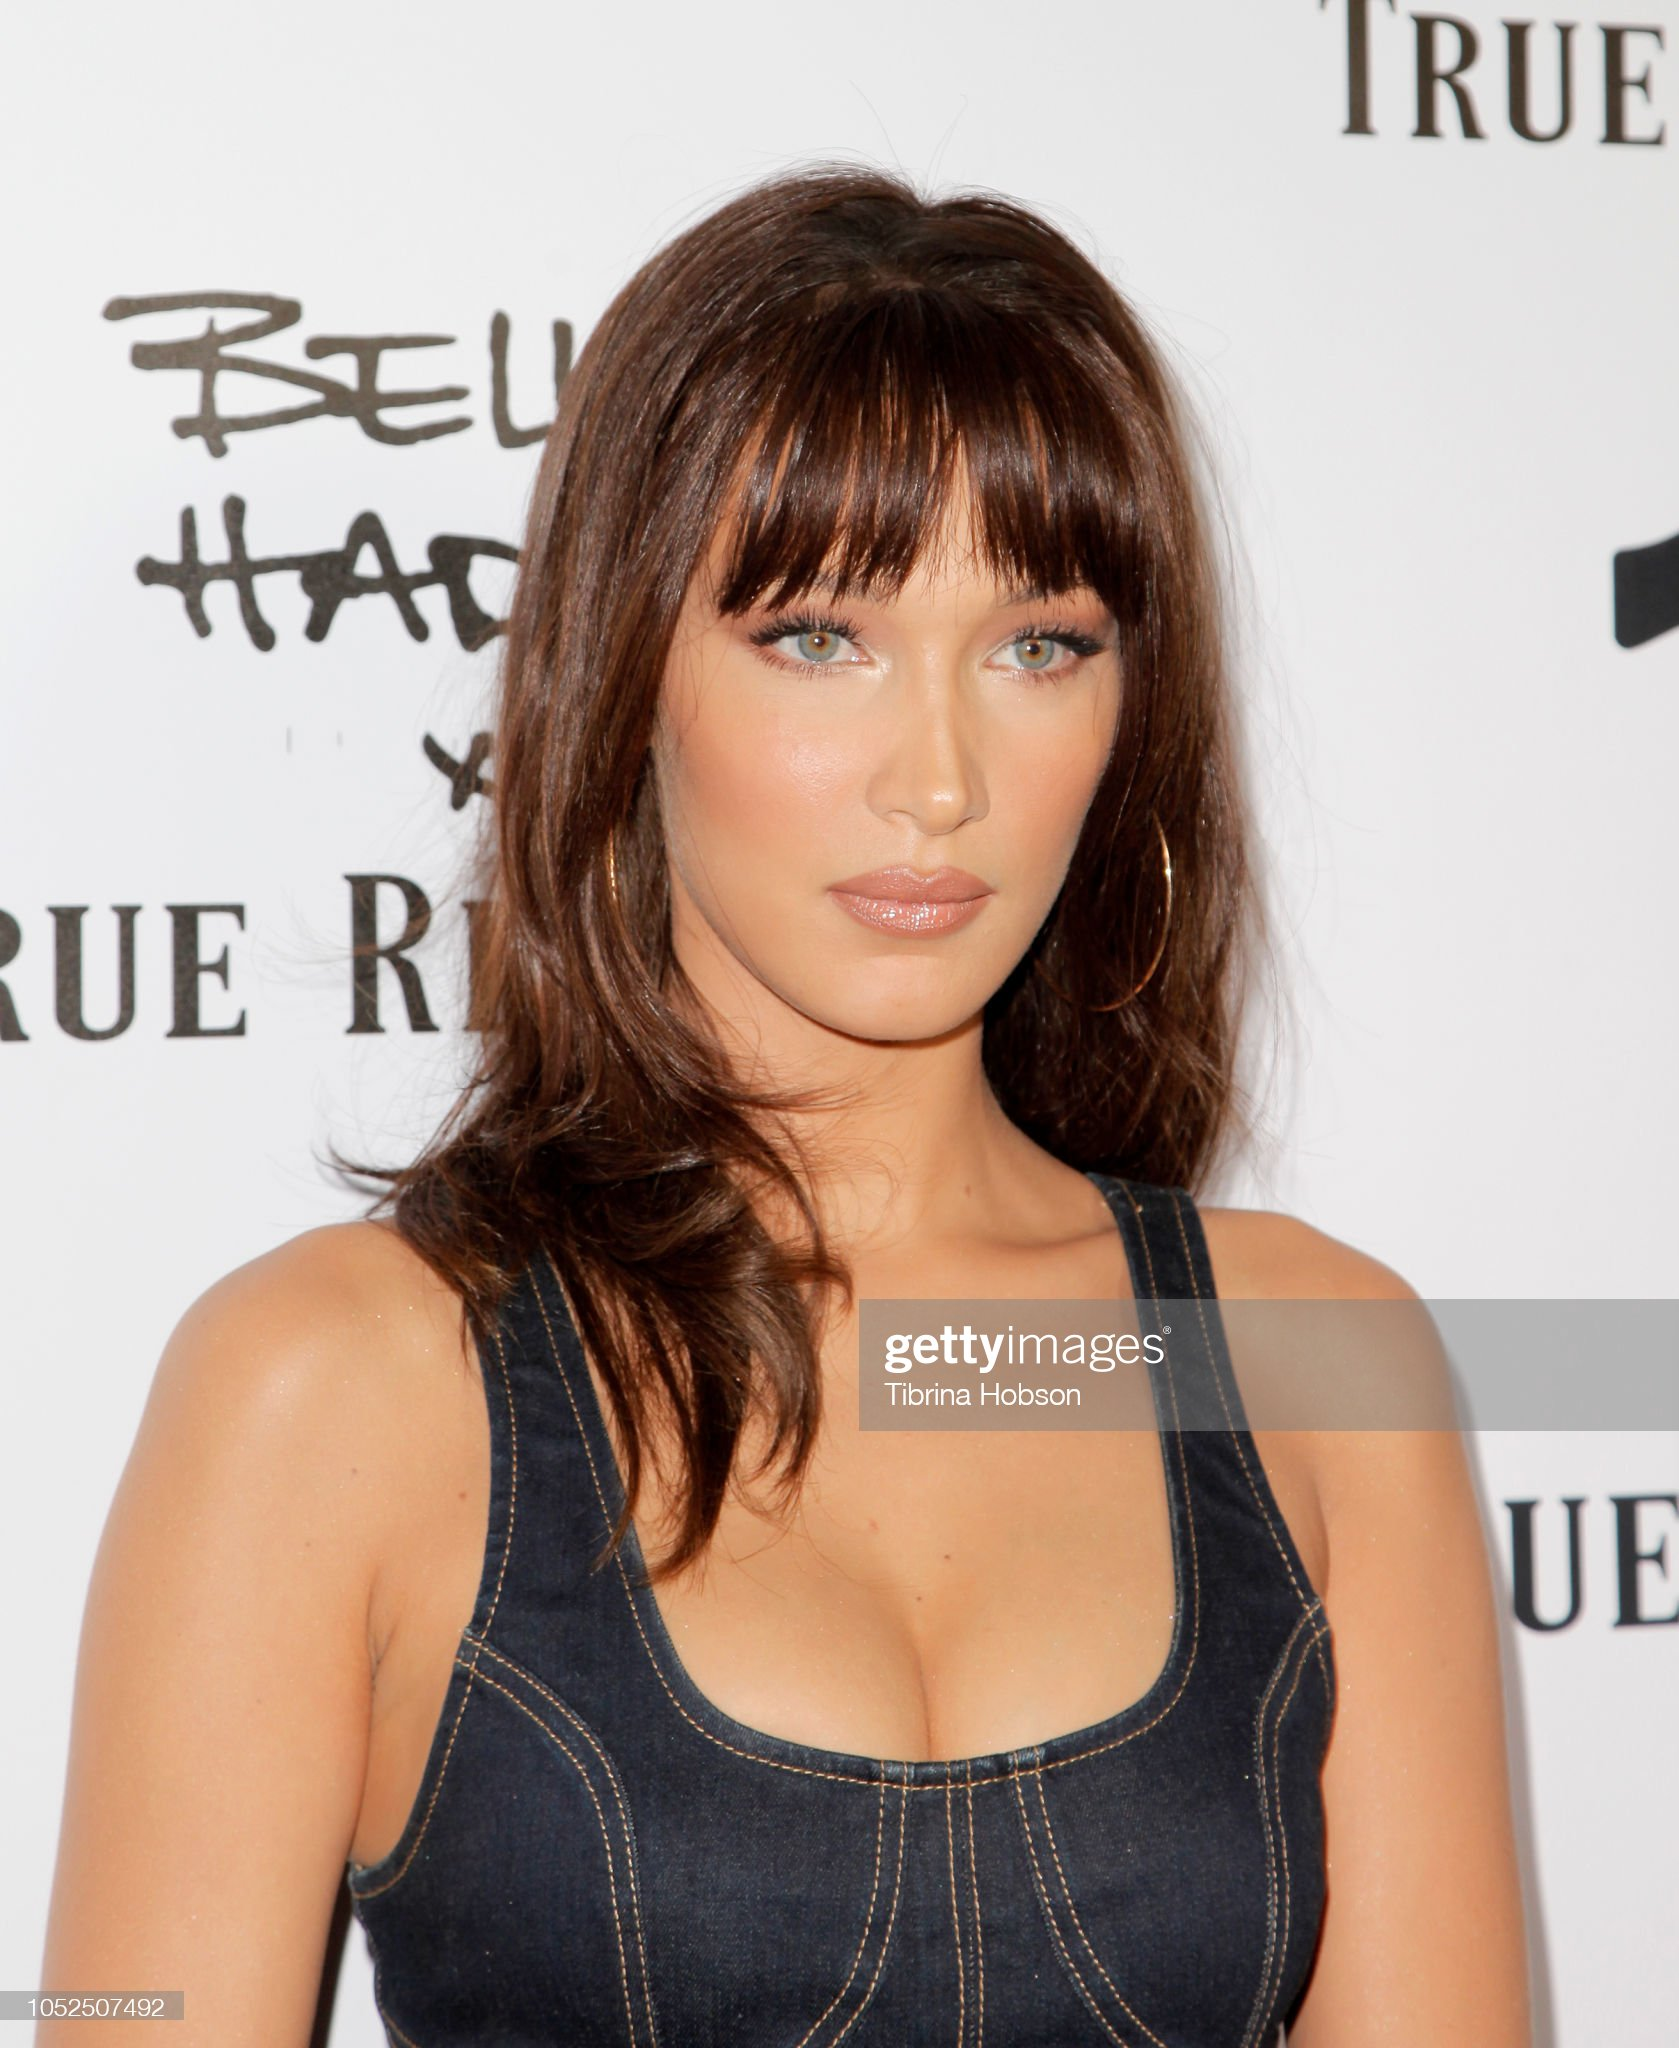 ¿Cuánto mide Bella Hadid? - Altura - Real height Bella-hadid-attends-the-bella-hadid-x-true-religion-event-at-poppy-on-picture-id1052507492?s=2048x2048